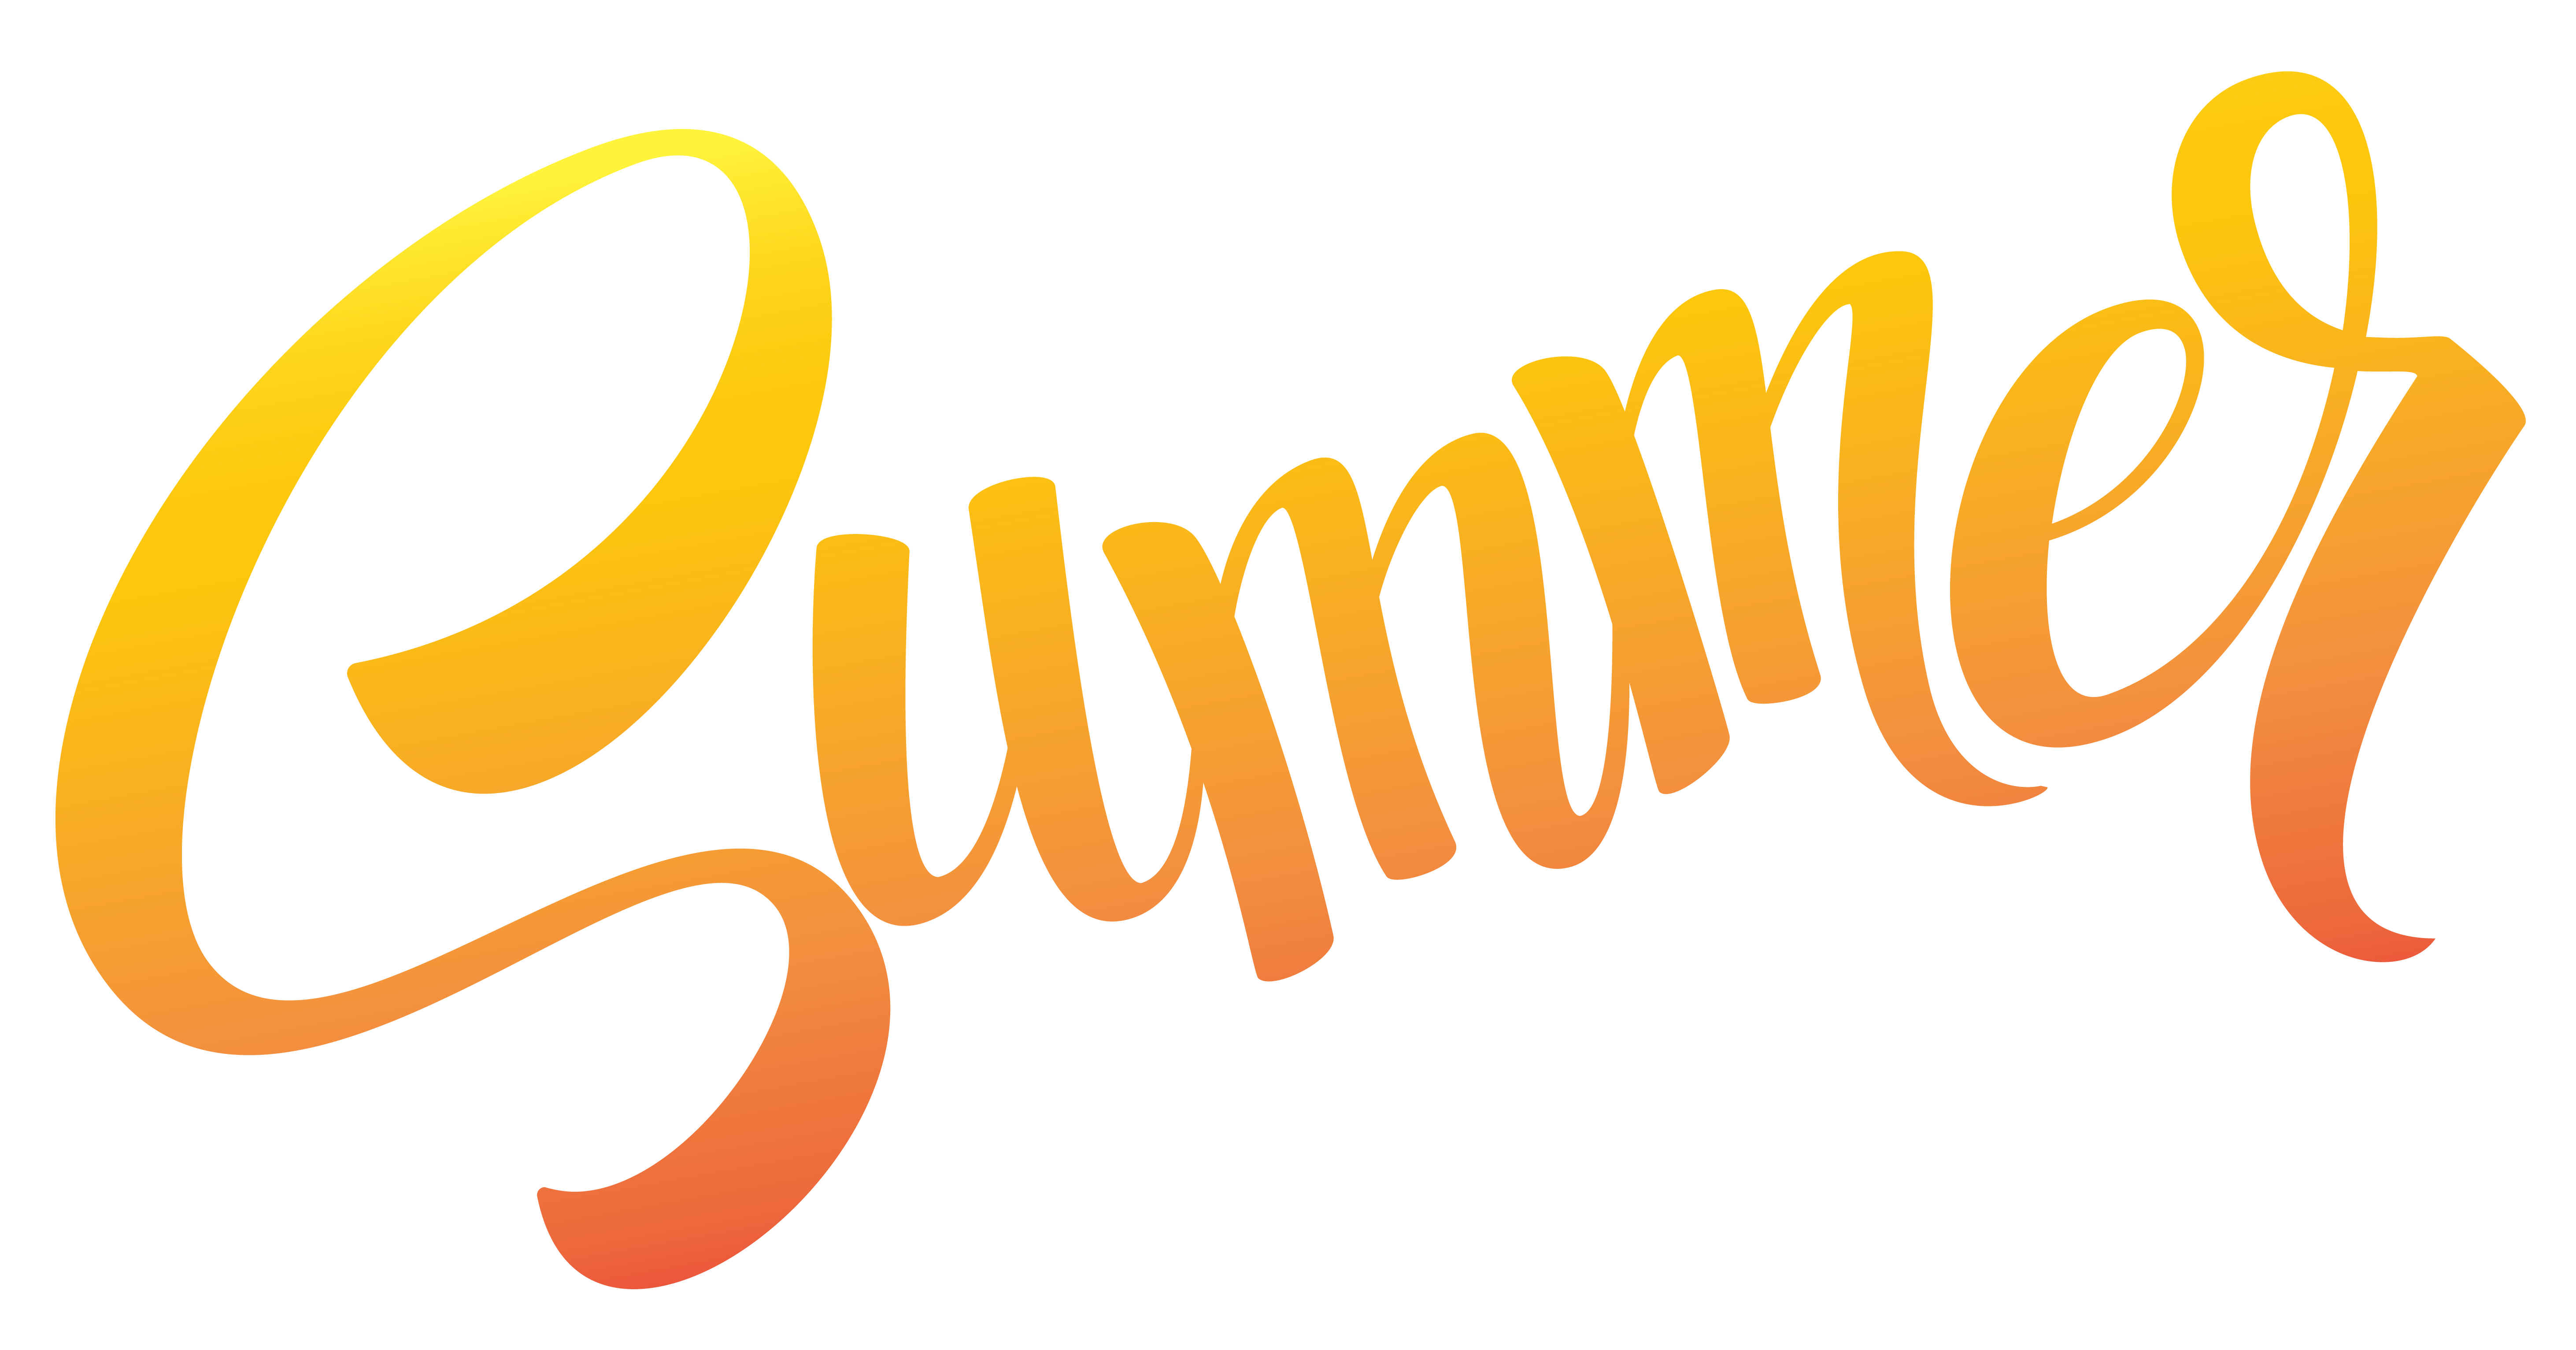 Text clipart summer View Yopriceville Quality PNG Gallery